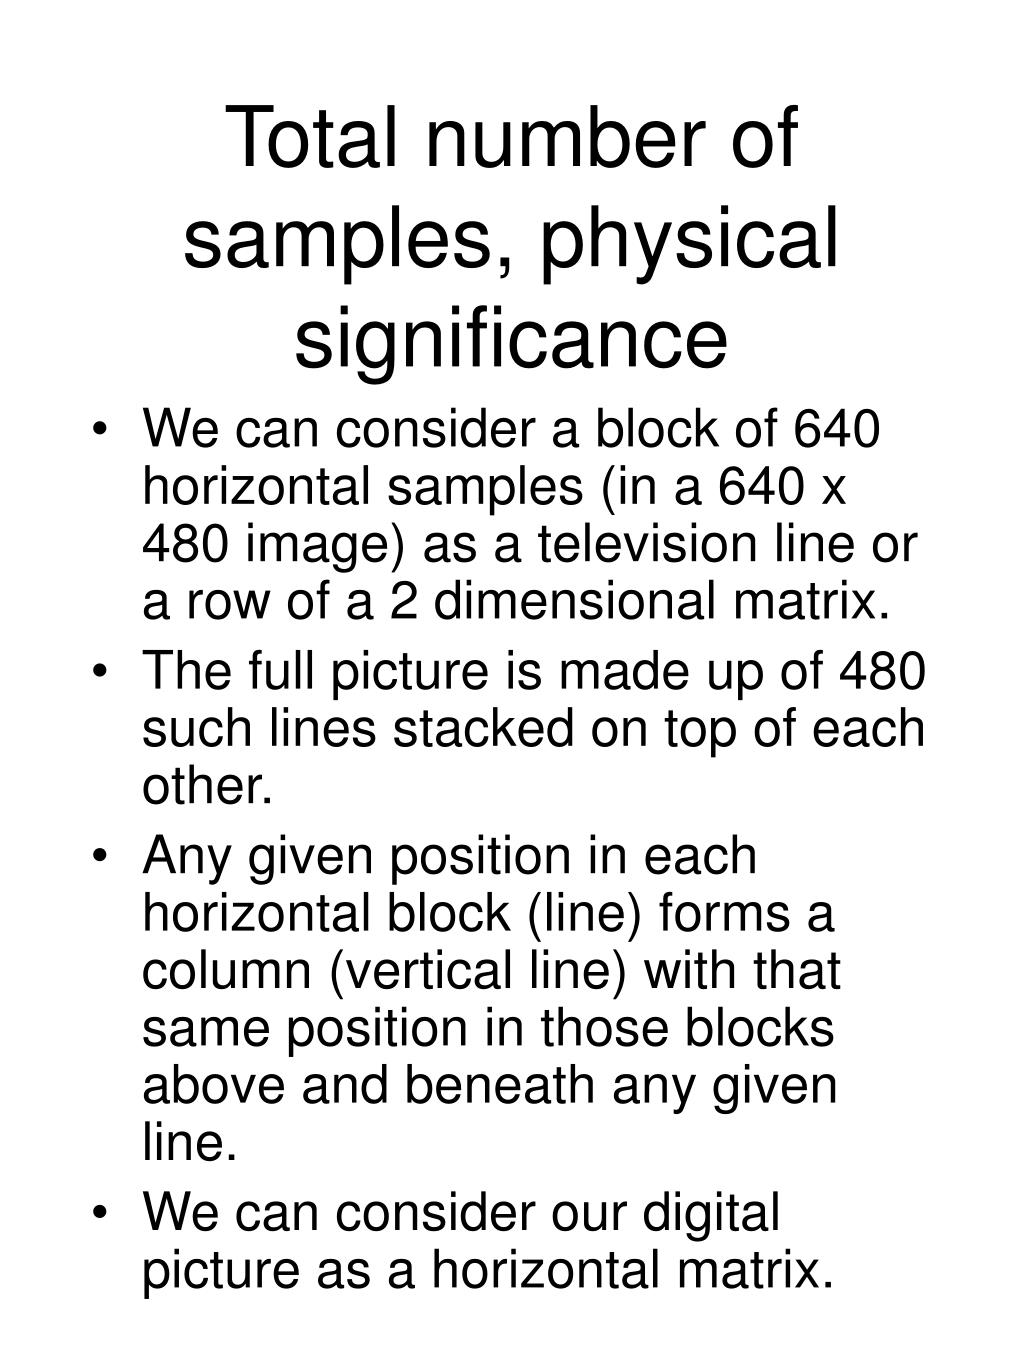 Total number of samples, physical significance